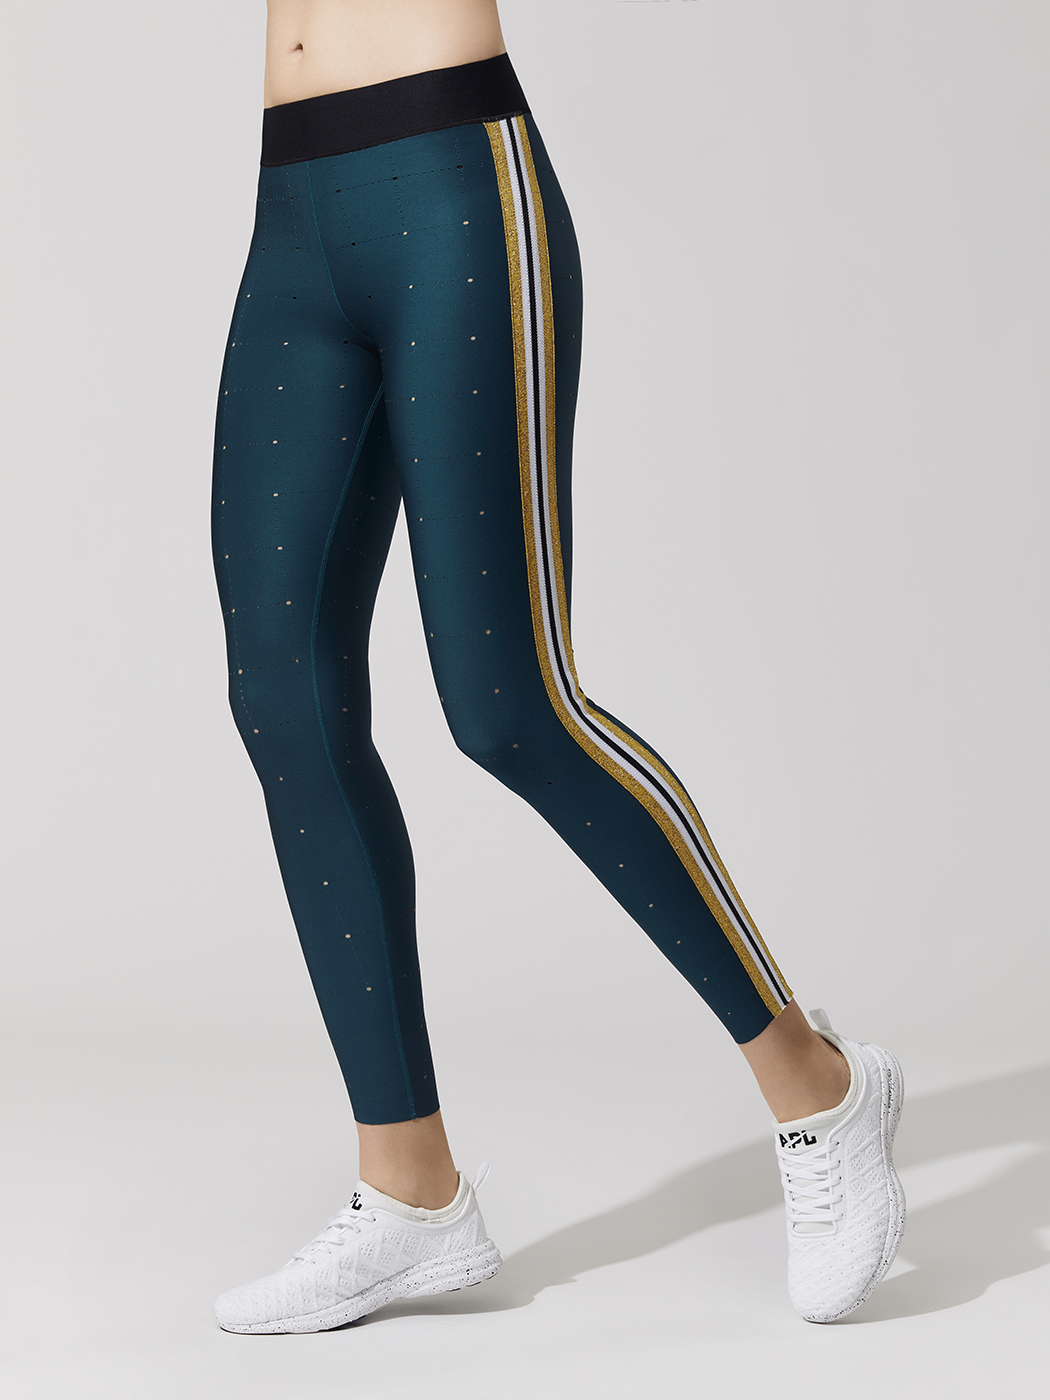 28e2218b1639b Ultra quiltline legging in 2019 | Products | Workout leggings, Yoga ...